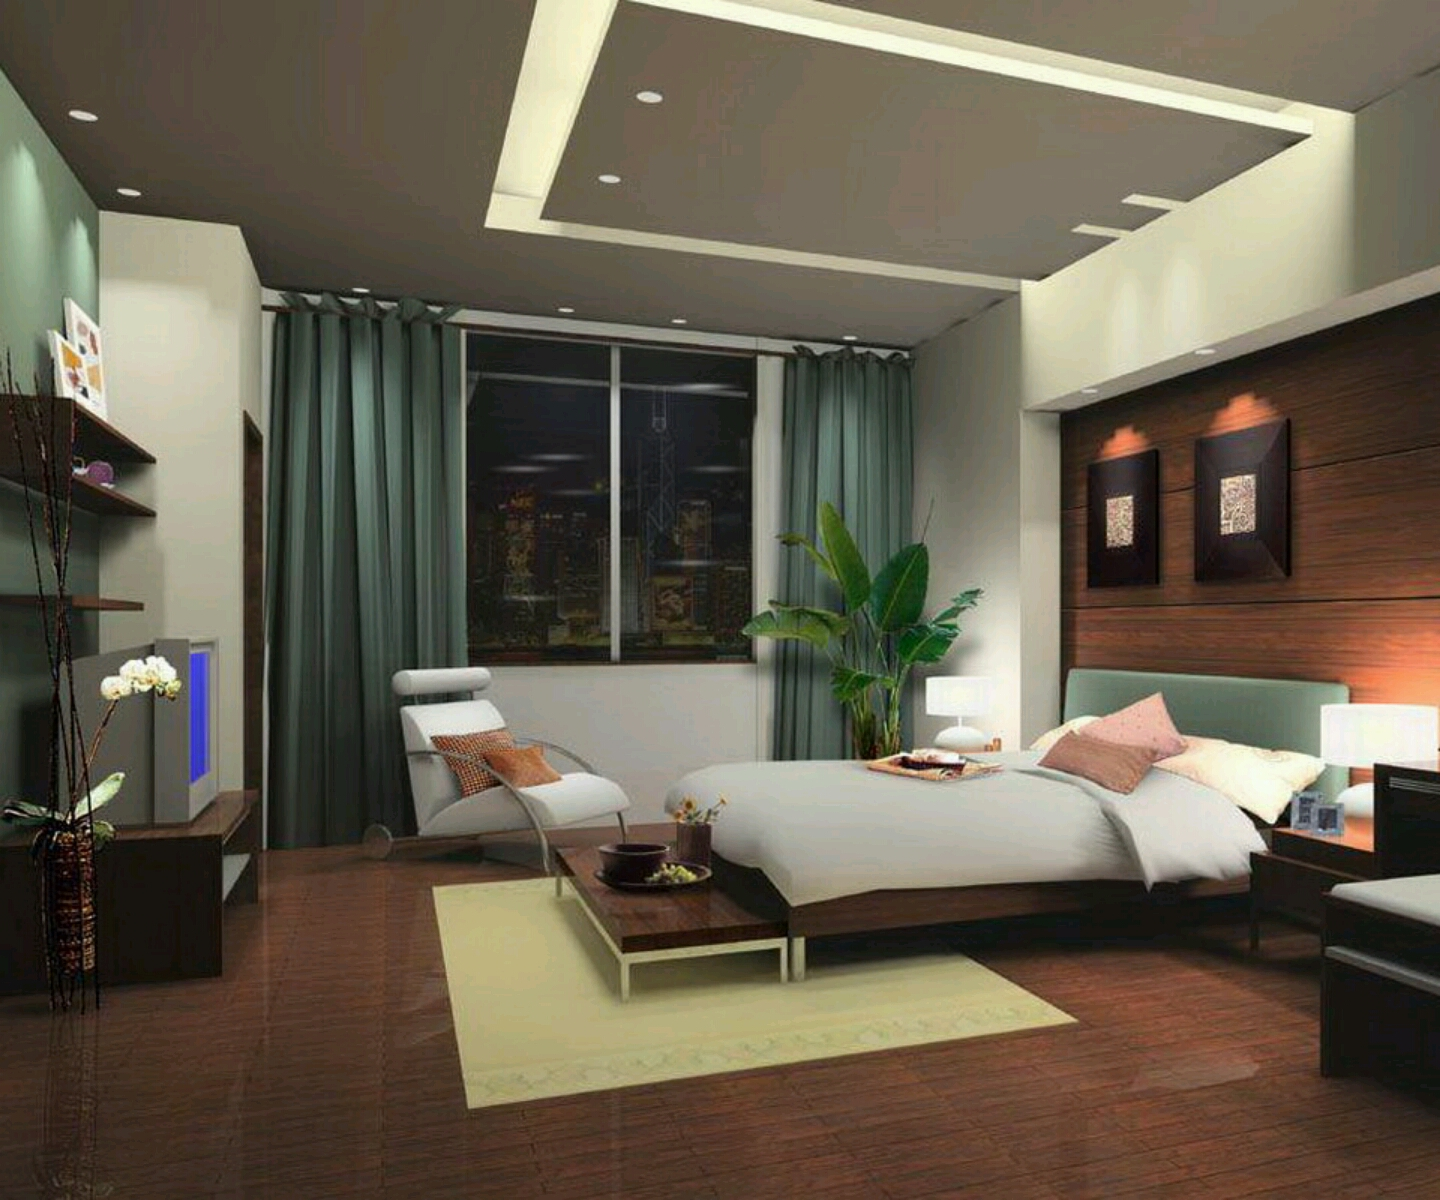 bedroom design bedroom interior design small modern ideas – my blog